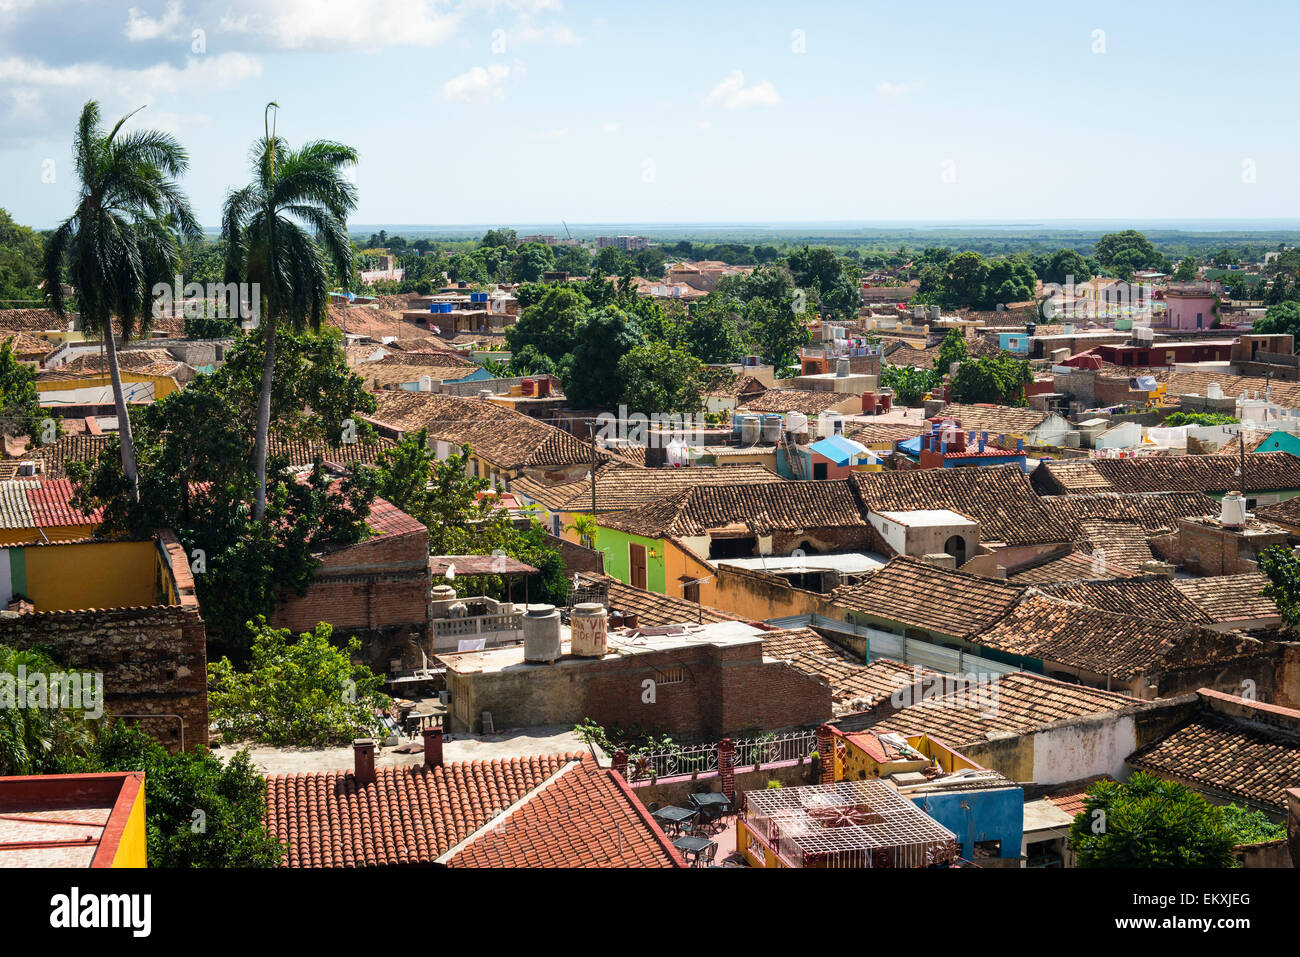 Cuba Trinidad Palacio Cantero Museo Historica Municipal tower over old city town tiled roofs roof - Stock Image